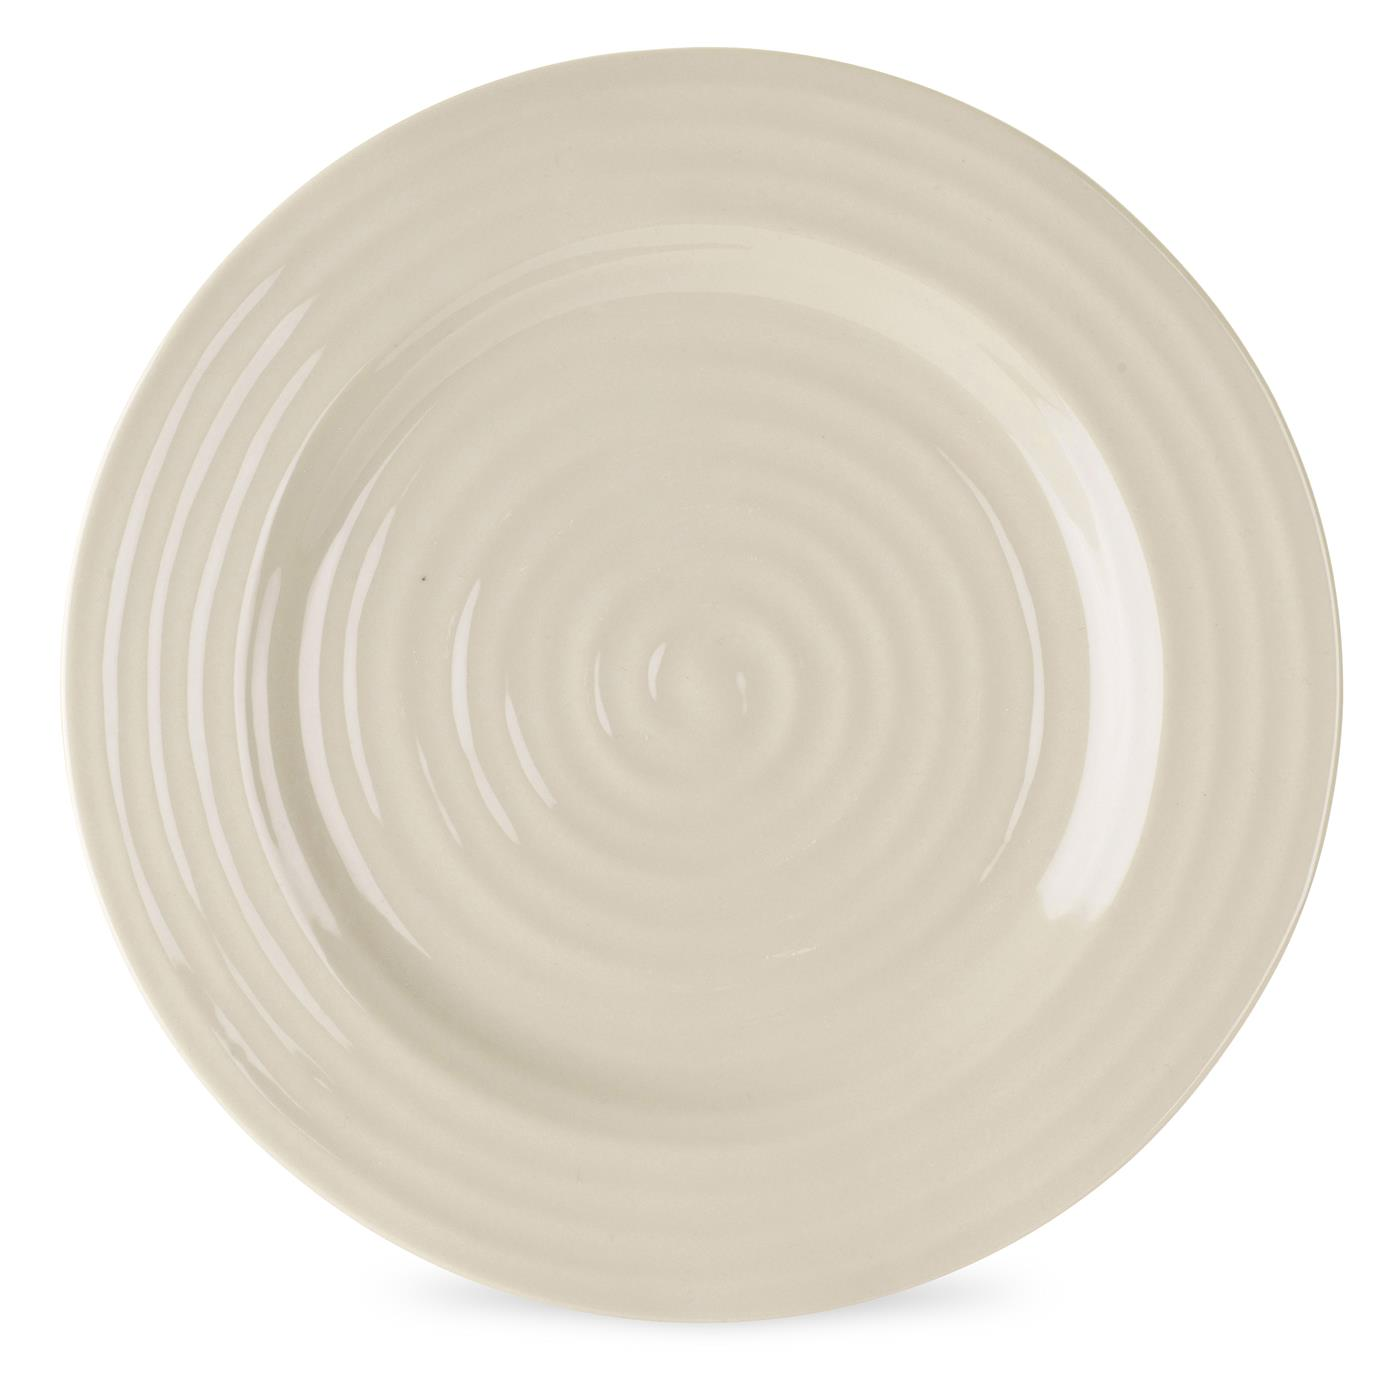 Portmeirion Sophie Conran Pebble Set of 4 Dinner Plates image number 0